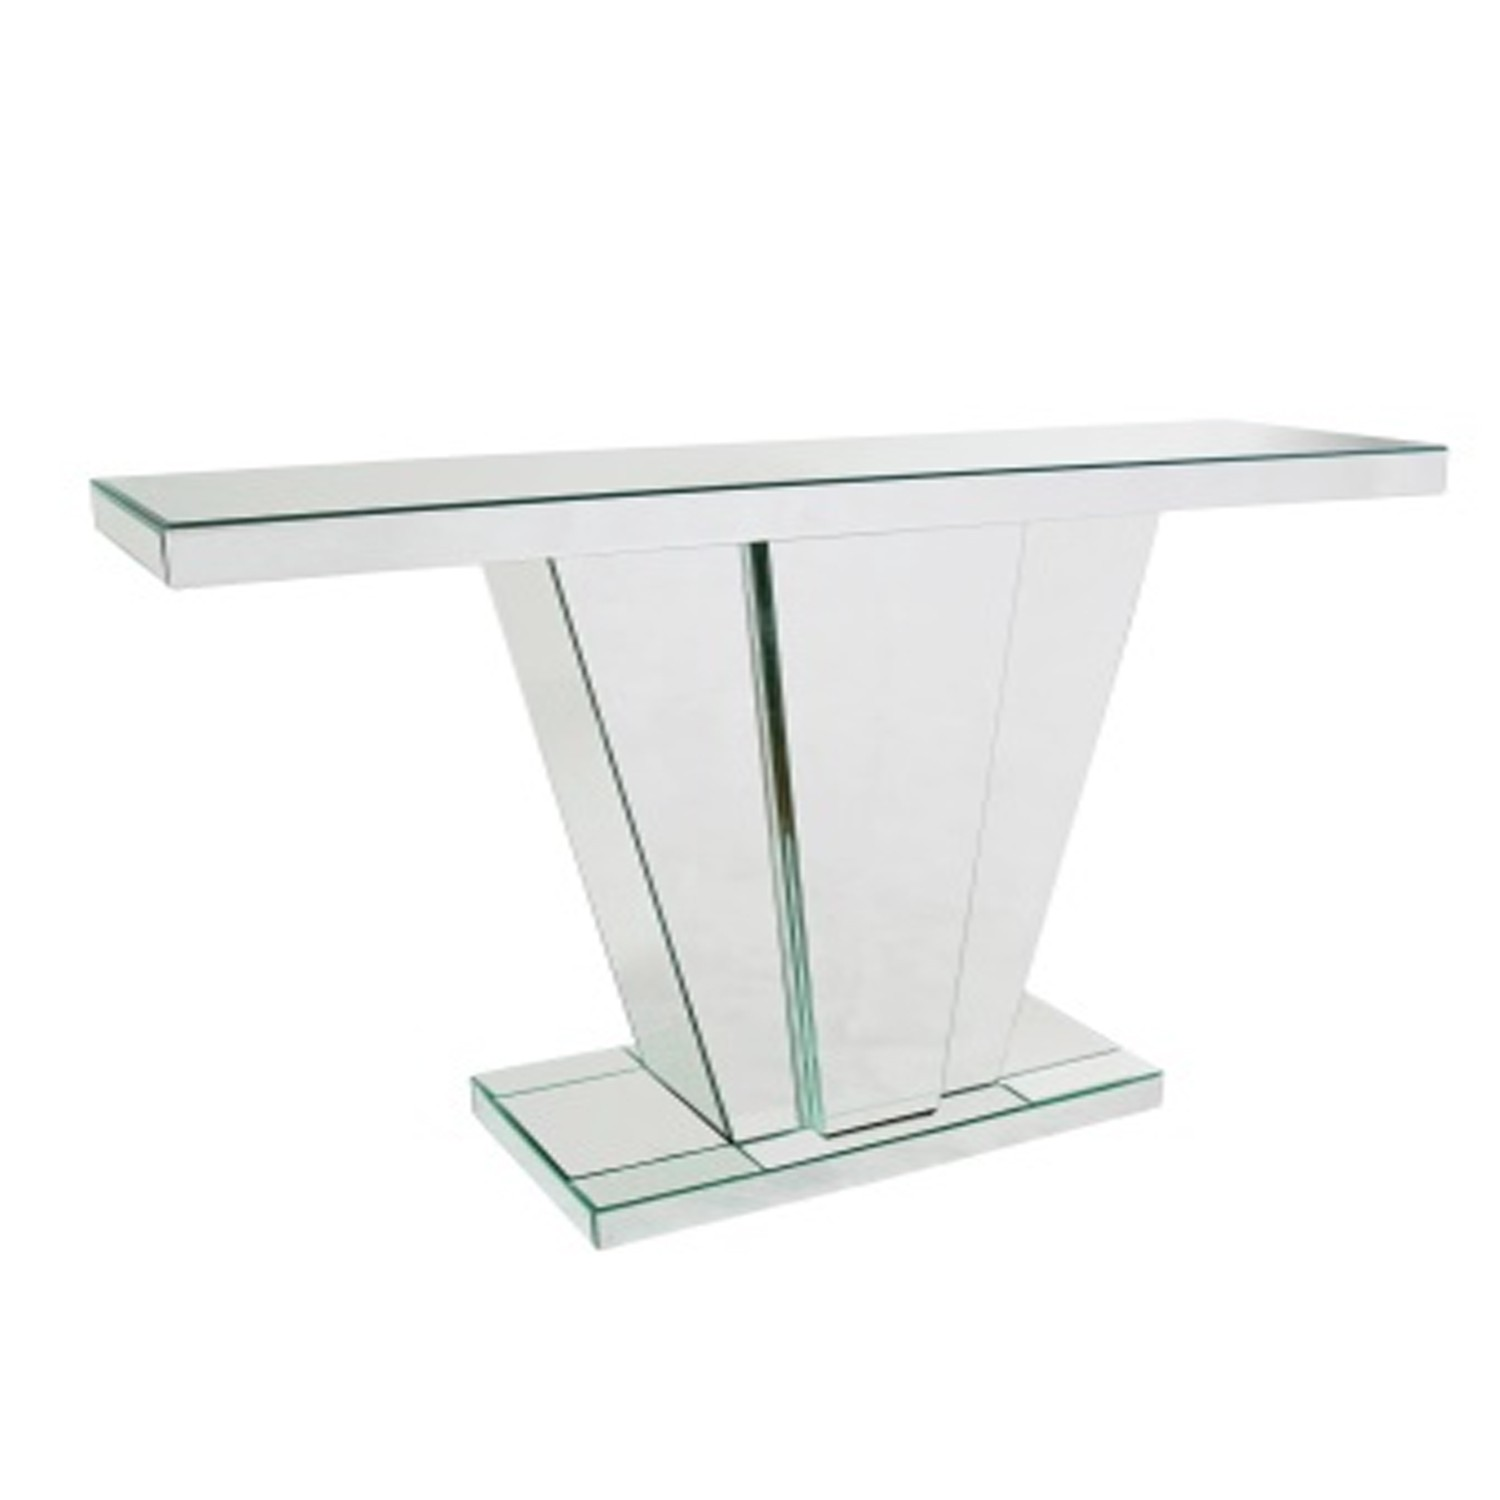 Tempting V Frame Mirrored Console Table V Frame Mirrored Console Table Abreo Home Furniture Mirrored Console Table Amazon Mirrored Console Table Bottom Shelf houzz-03 Mirrored Console Table